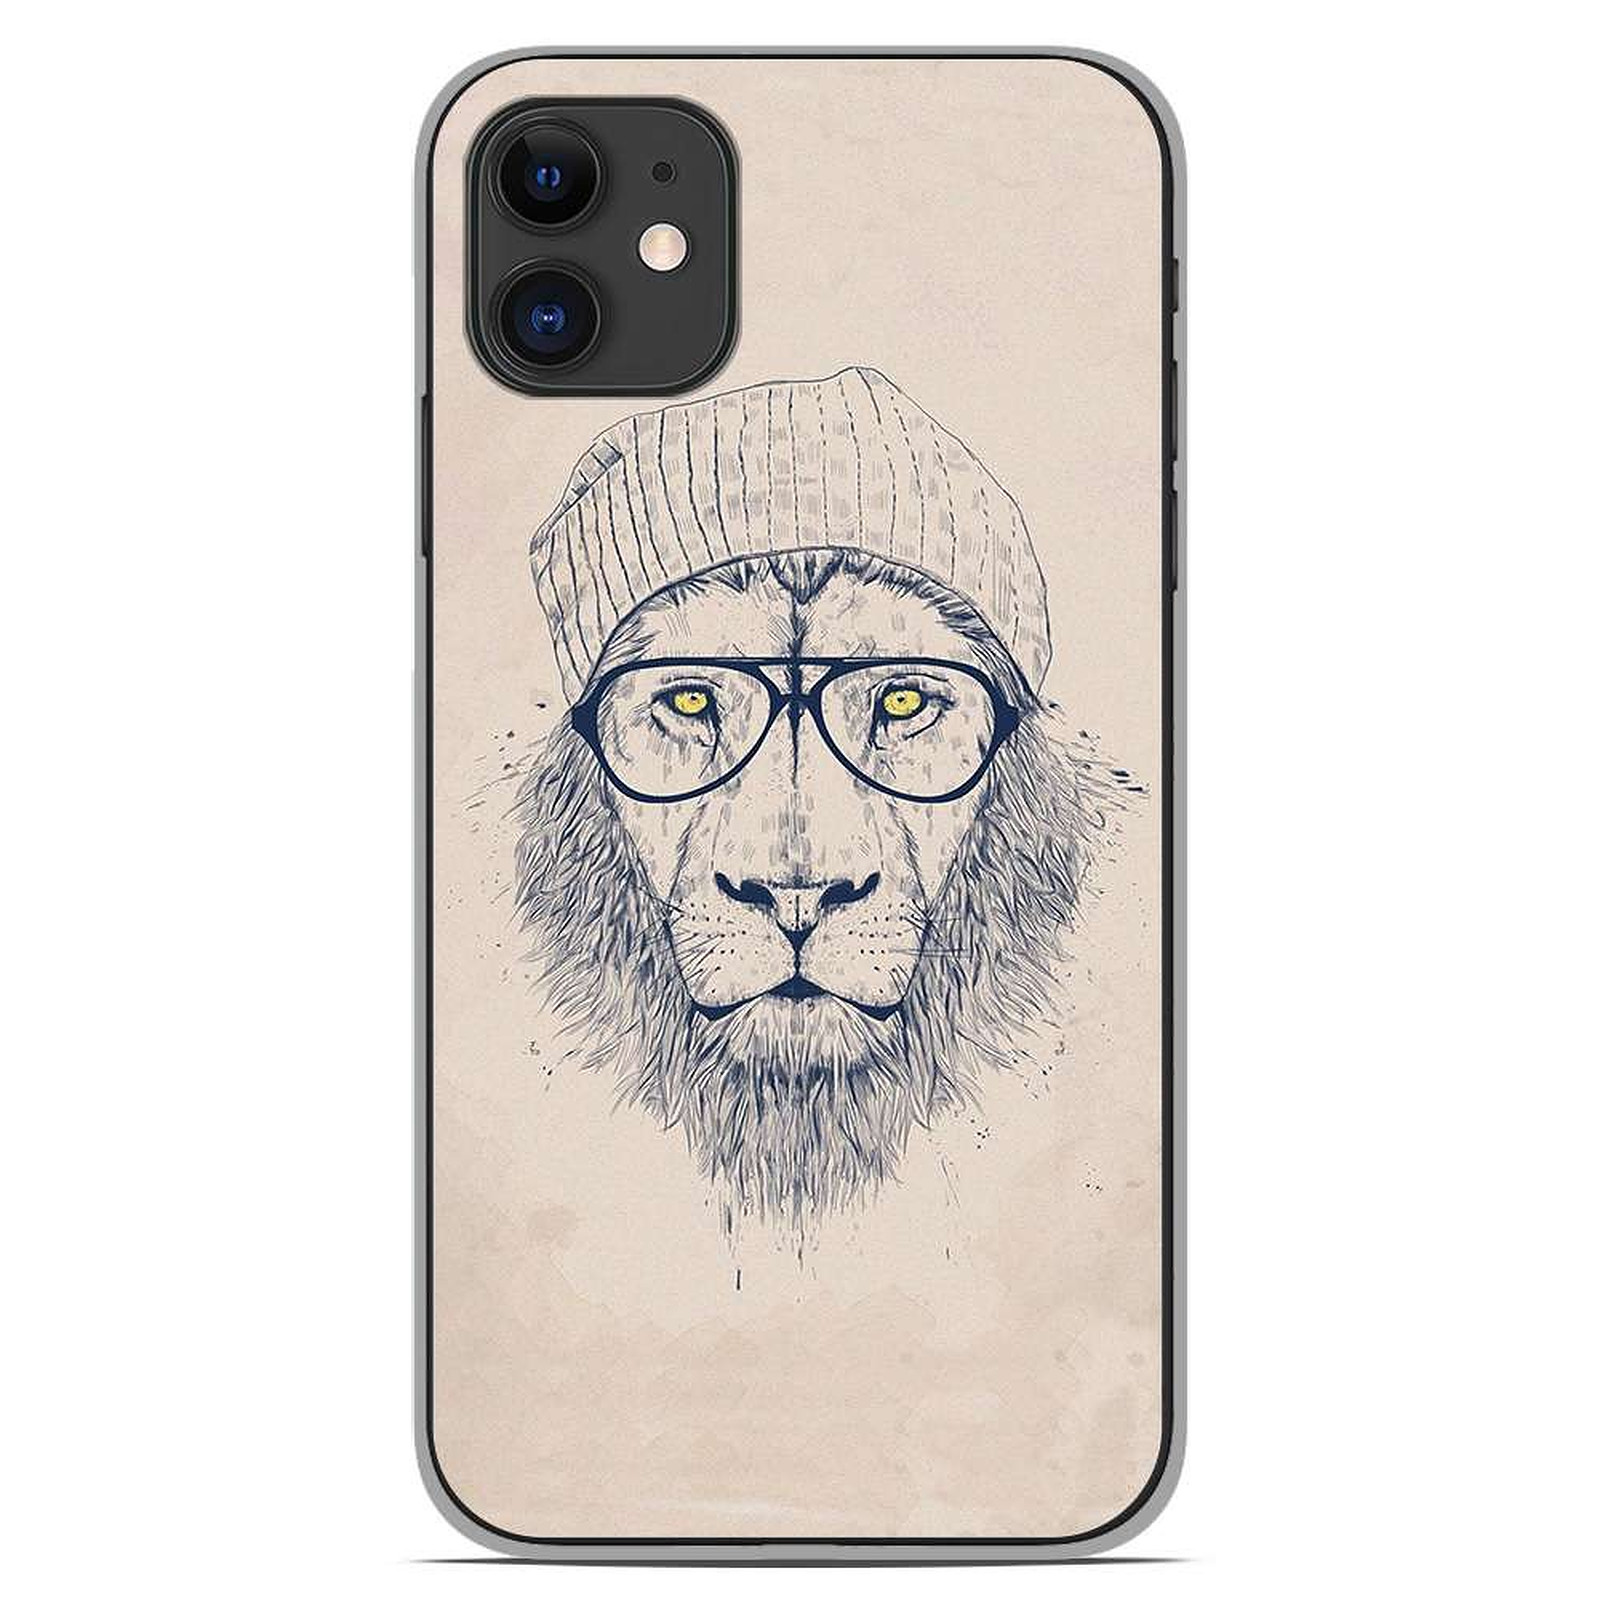 1001 Coques Coque silicone gel Apple iPhone 11 motif BS Cool Lion